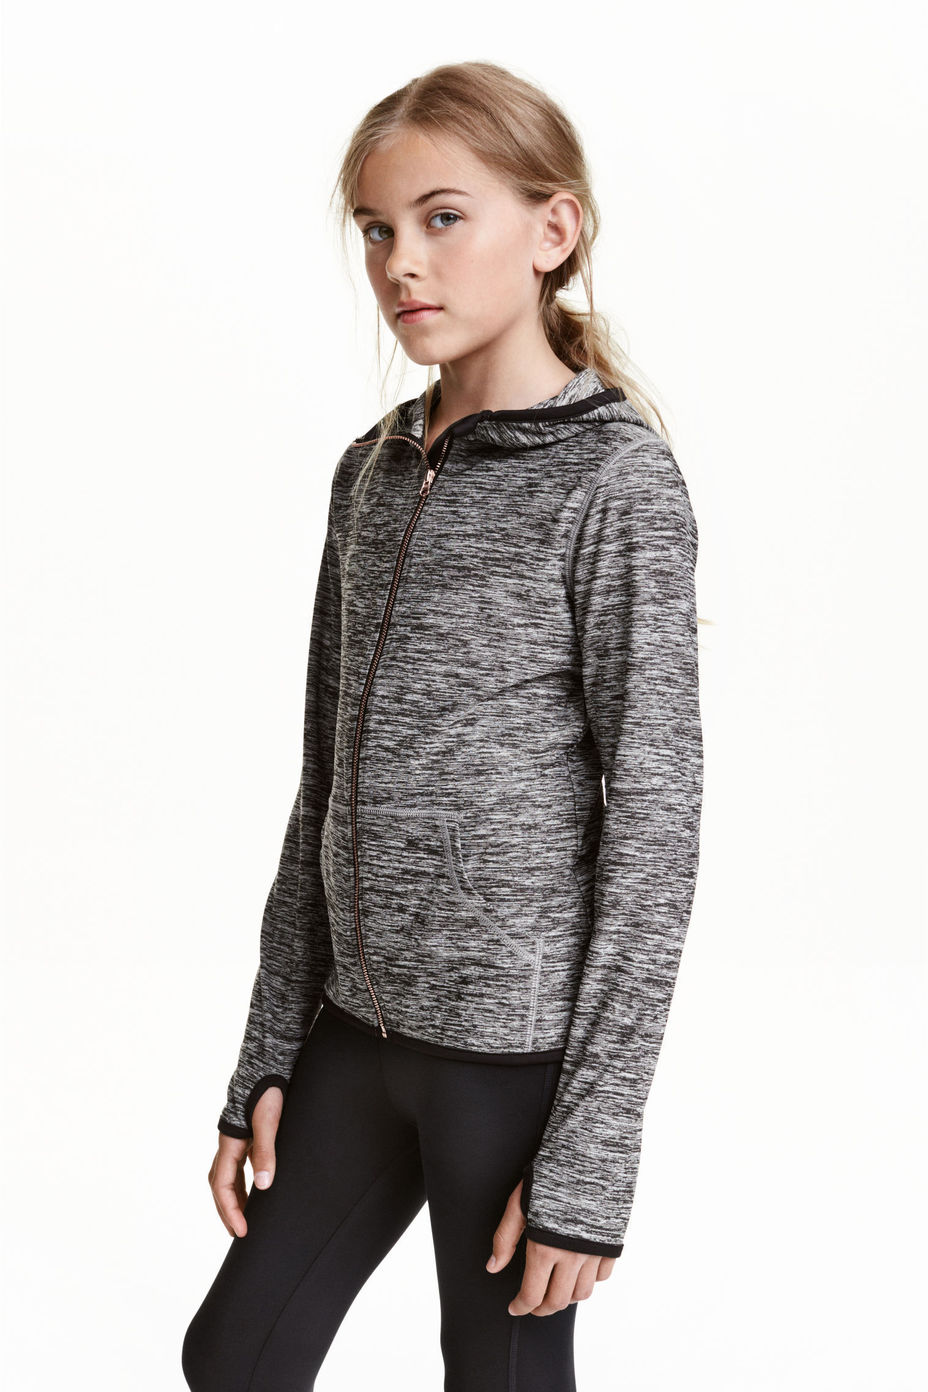 Ida A för H&M Online lookbook